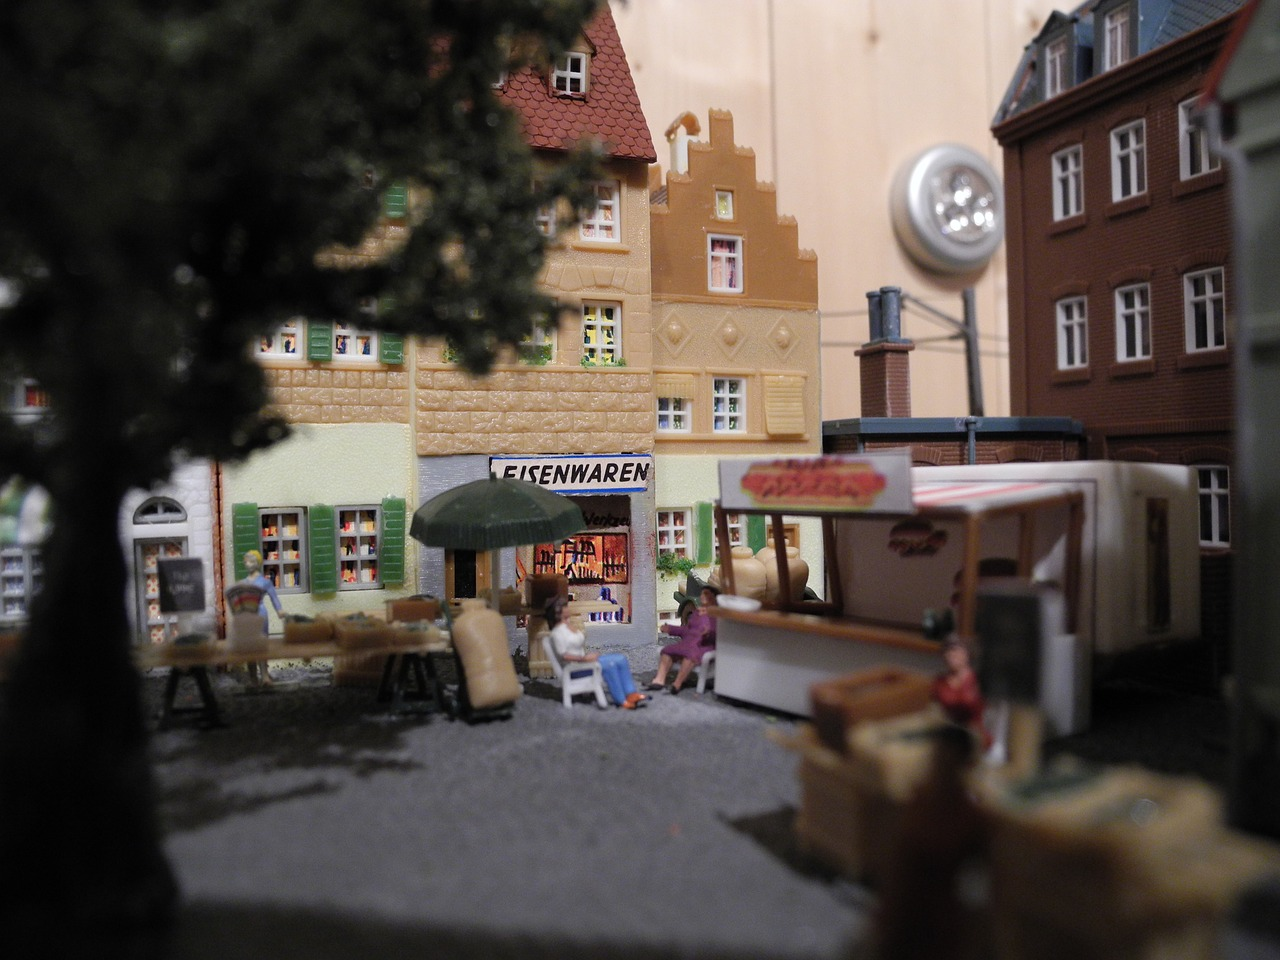 model railway,h0,hobby,marketplace,model train,toys,scale h0,free pictures, free photos, free images, royalty free, free illustrations, public domain